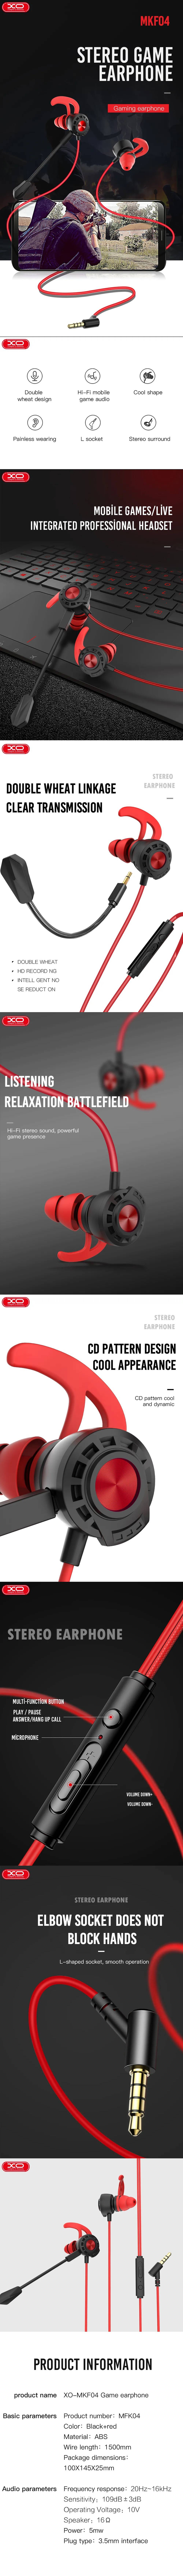 XO wired earphones MKF04 jack 3,5mm black-red with microphone